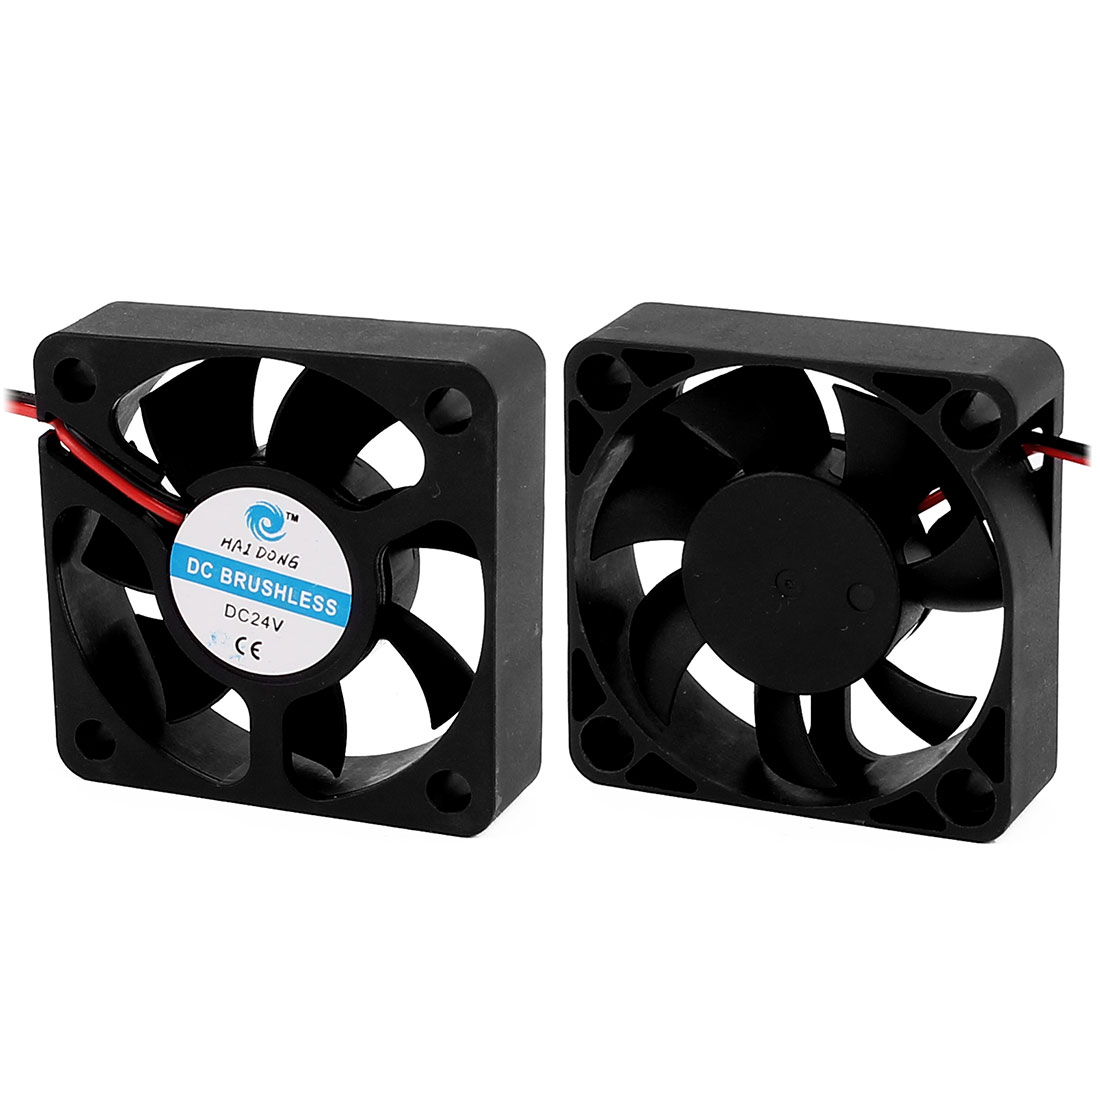 2DC 24V 0.06A 5x5x1.5cm 2-Wire 7 Vanes Black Cooling Fan for PC Case Cooler